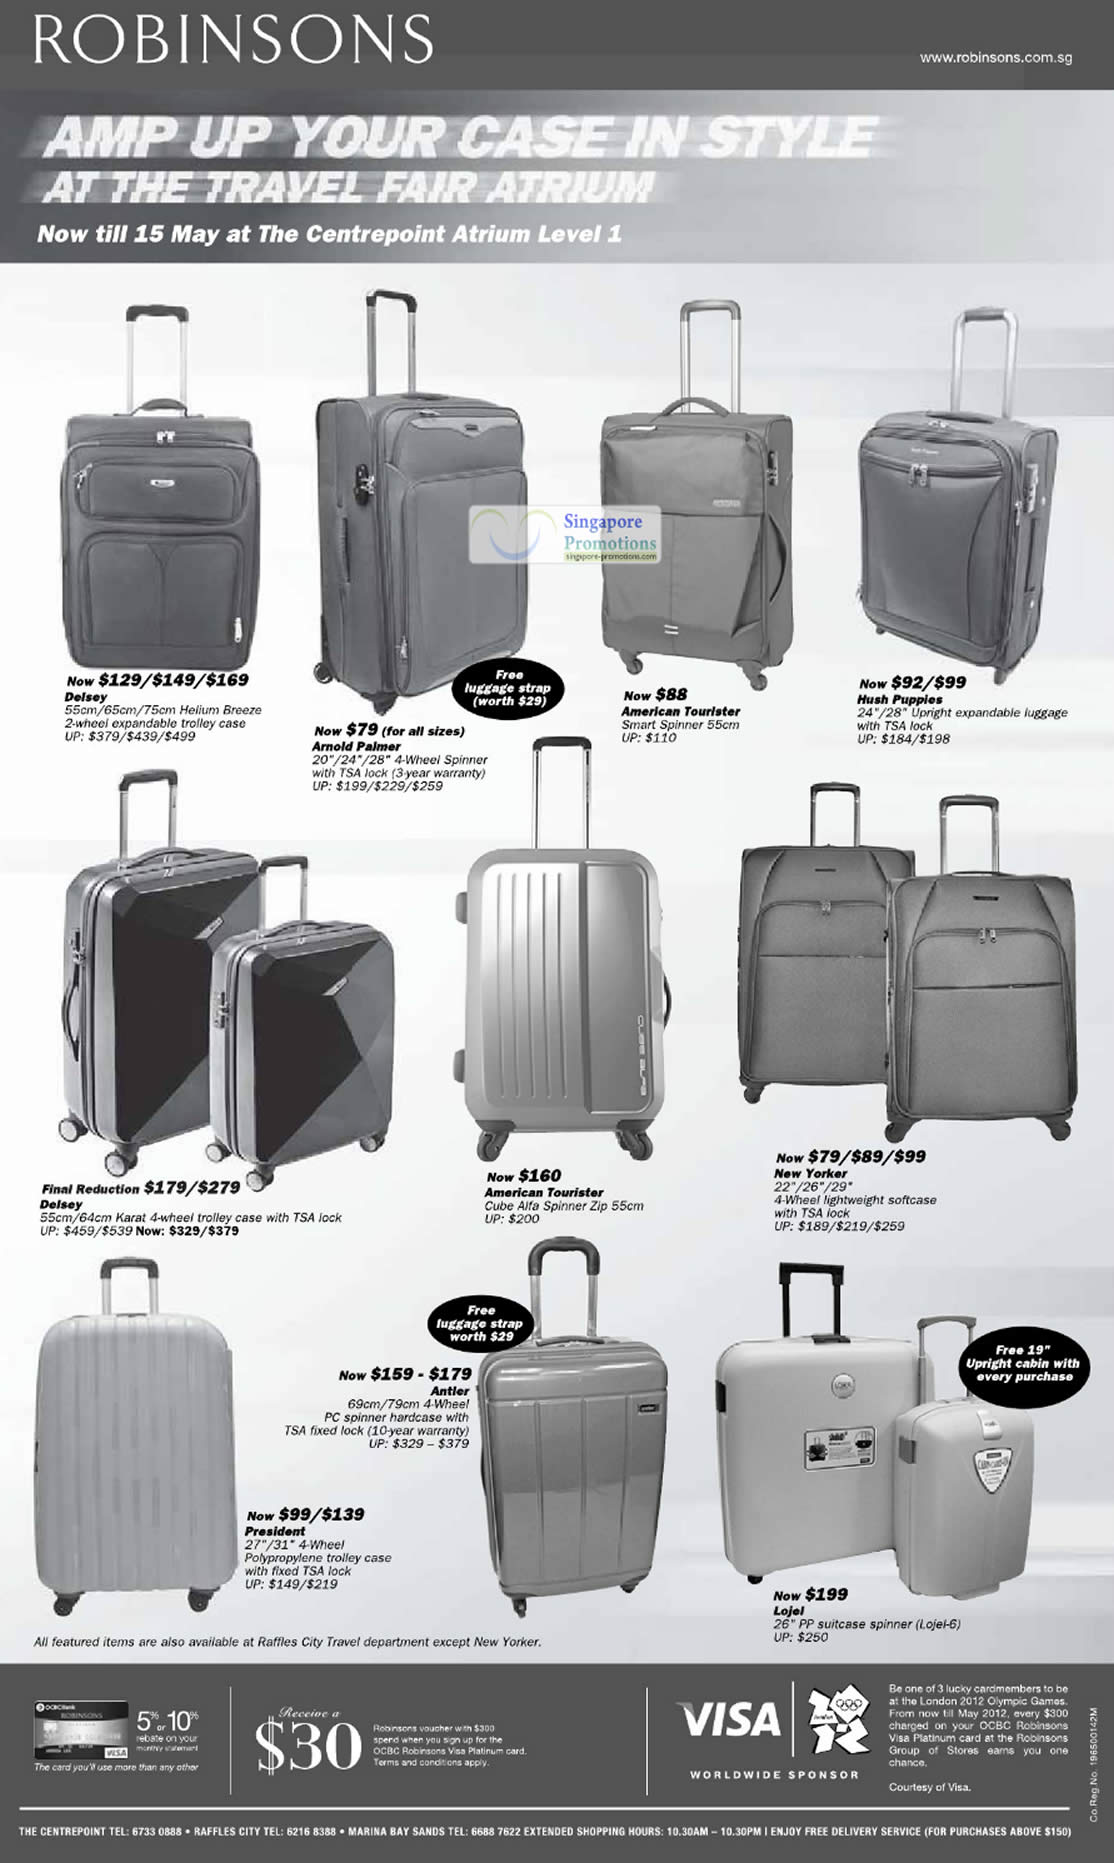 10 May Luggage Spinner American Tourister Hush Puppies